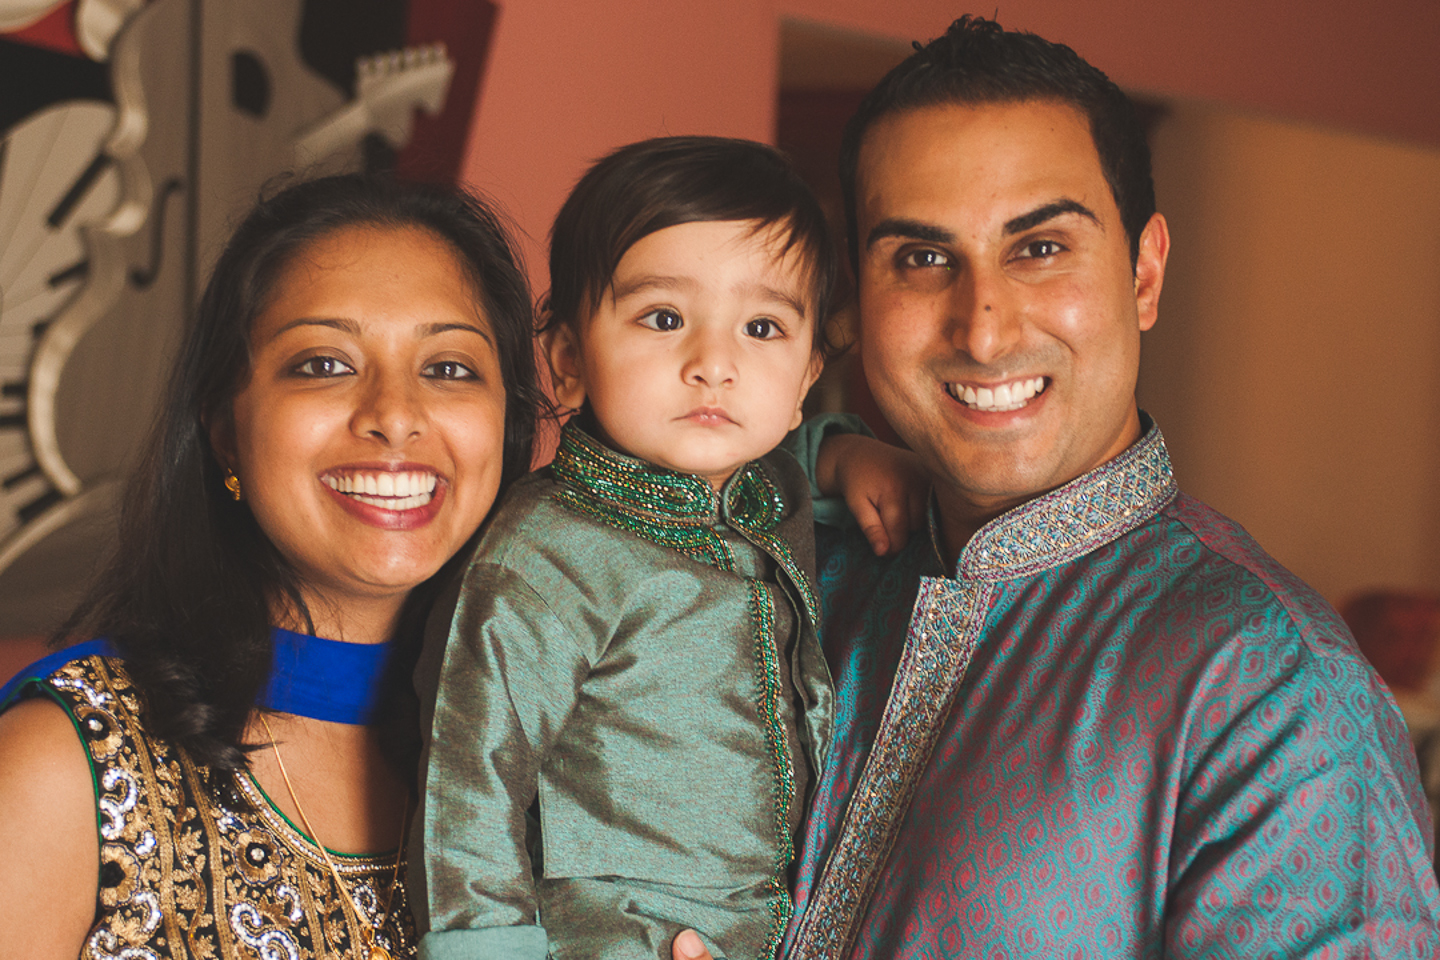 mithun-first-birthday-party-event-photography-long-island-ny-first-birthday-0001.jpg